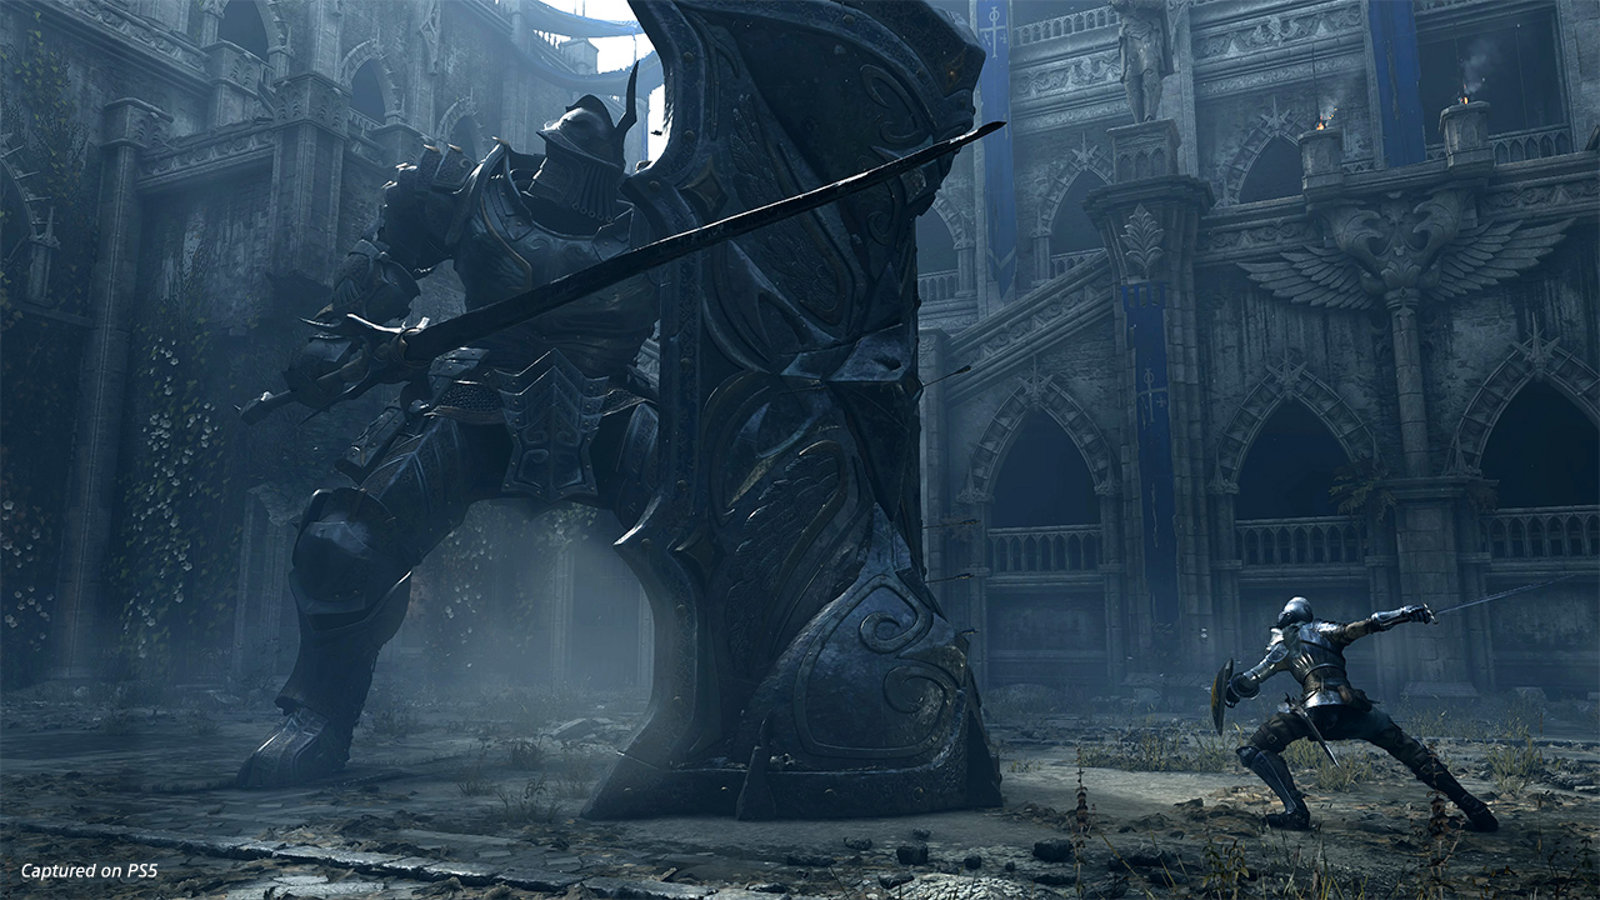 Demons Souls Remake: Make The Game Easier With The Most Overpowered Starting Class